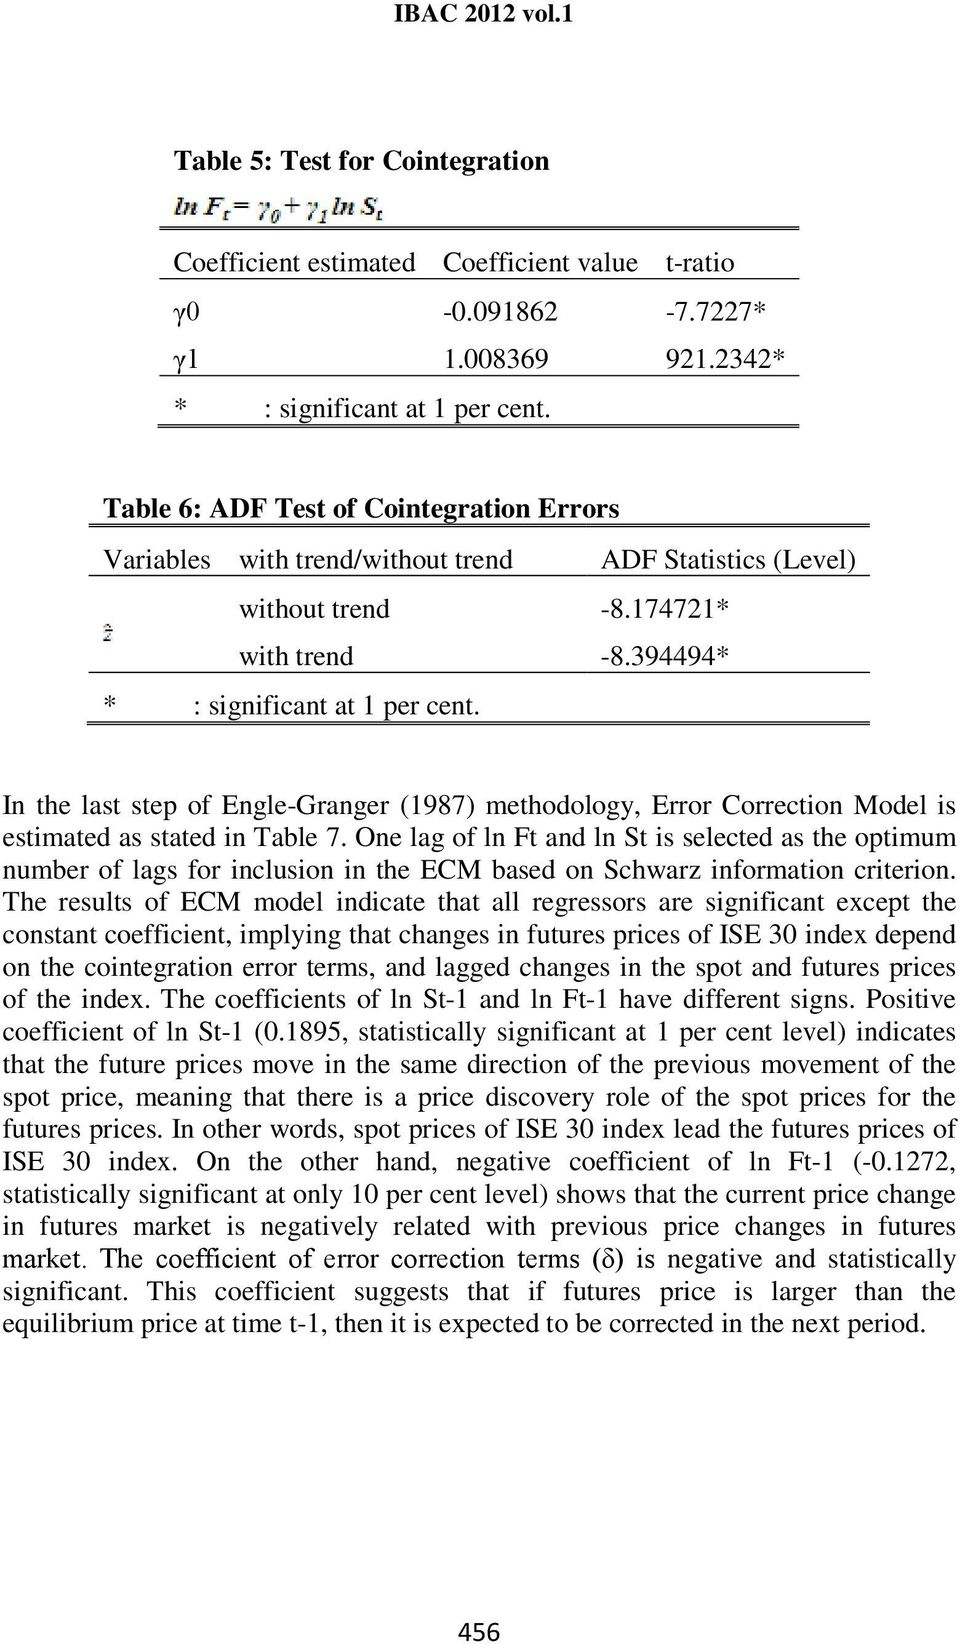 In the last step of Engle-Granger (1987) methodology, Error Correction Model is estimated as stated in Table 7.